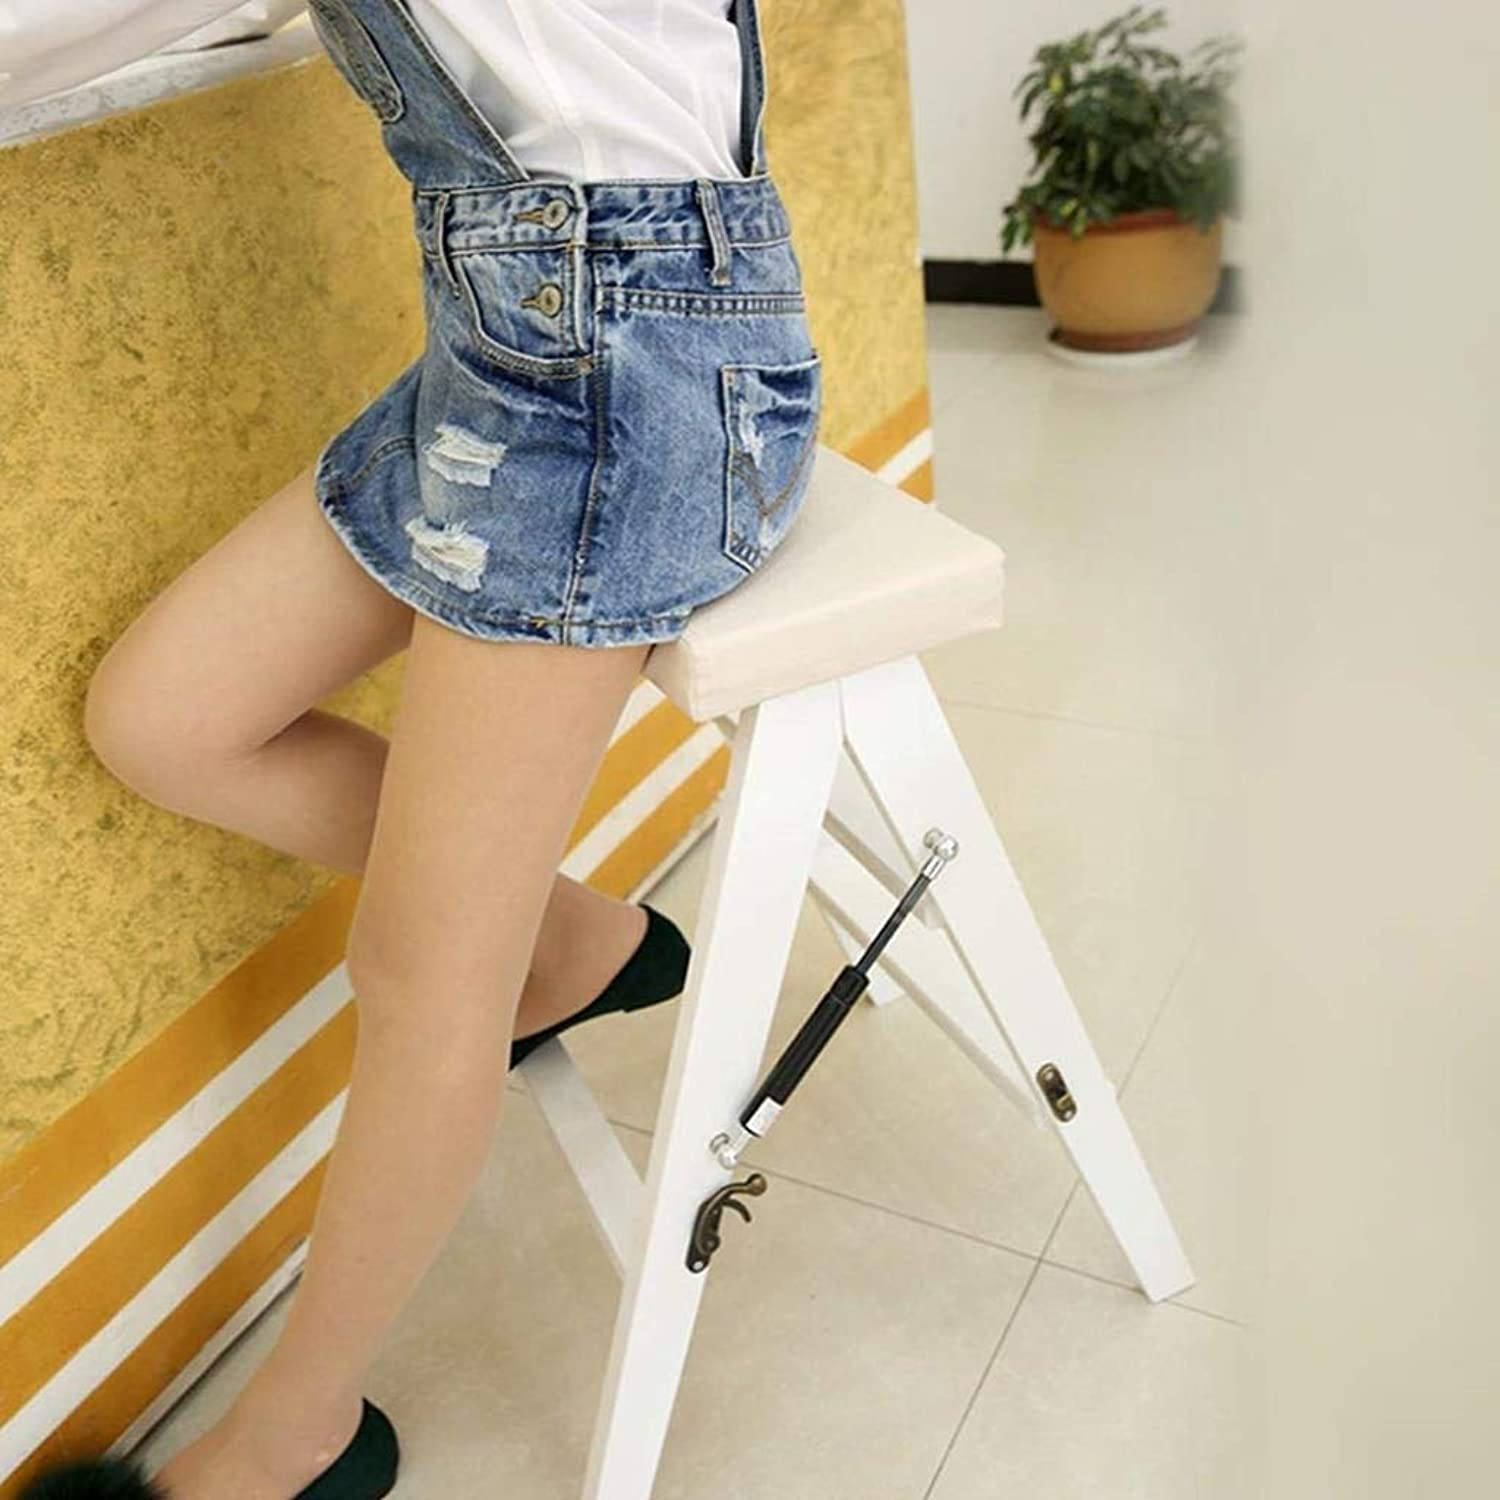 Solid Wood Folding Stool Simple Modern Folding Ladder Stool Home Kitchen Stool Portable Stool Adult Ascending Stool 42.5x48x63cm ZXMDMZ (color   White)